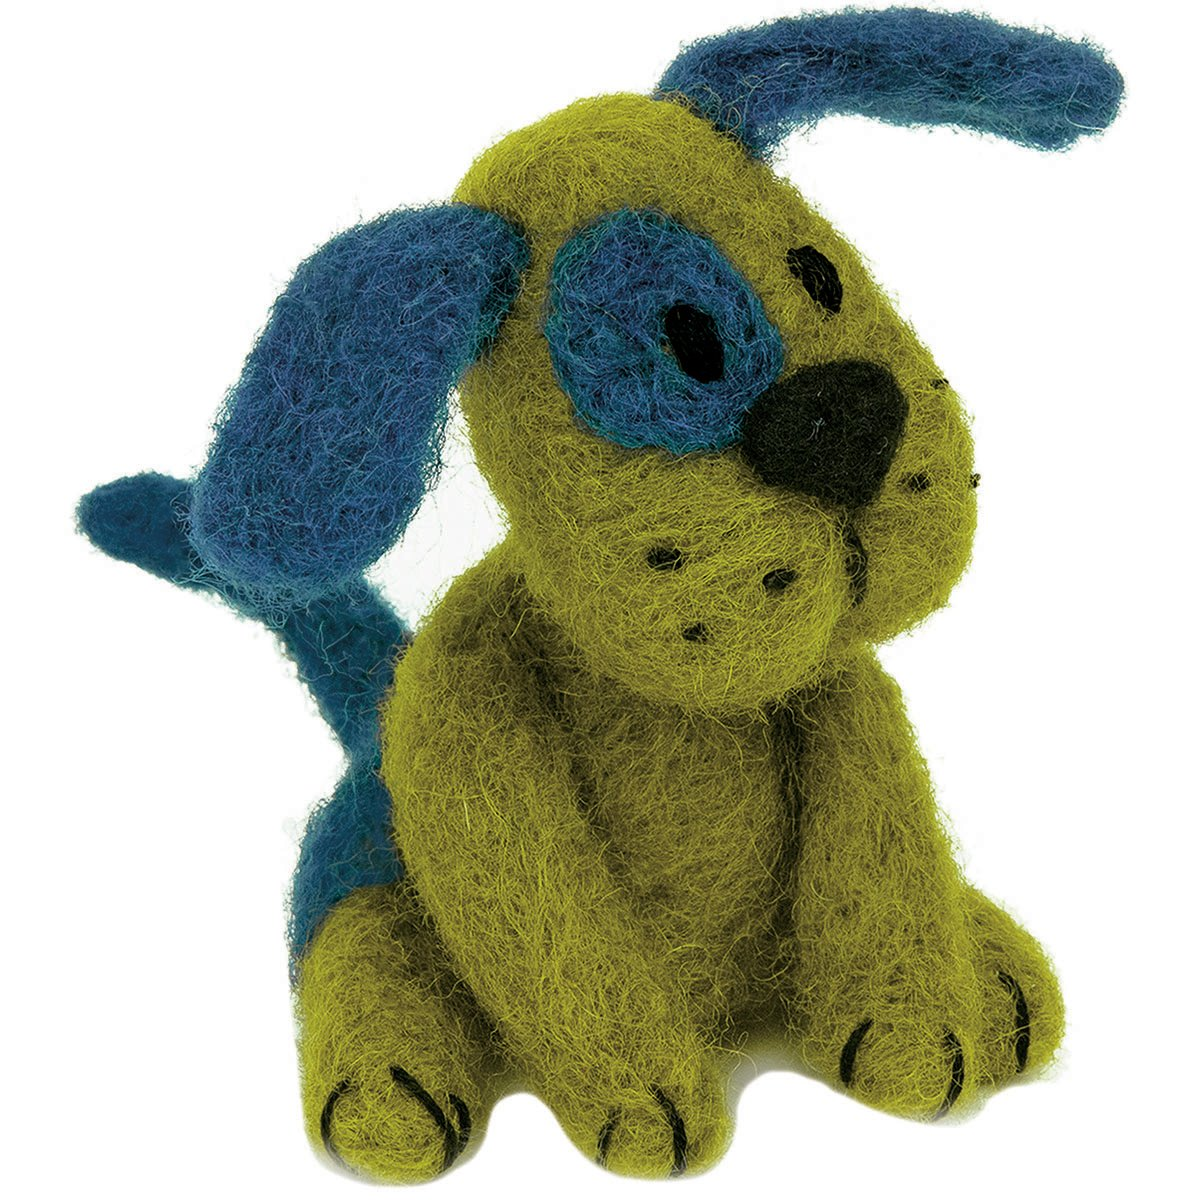 Dimensions Crafts 72-74042 Puppy Needle Felting Kit, Green